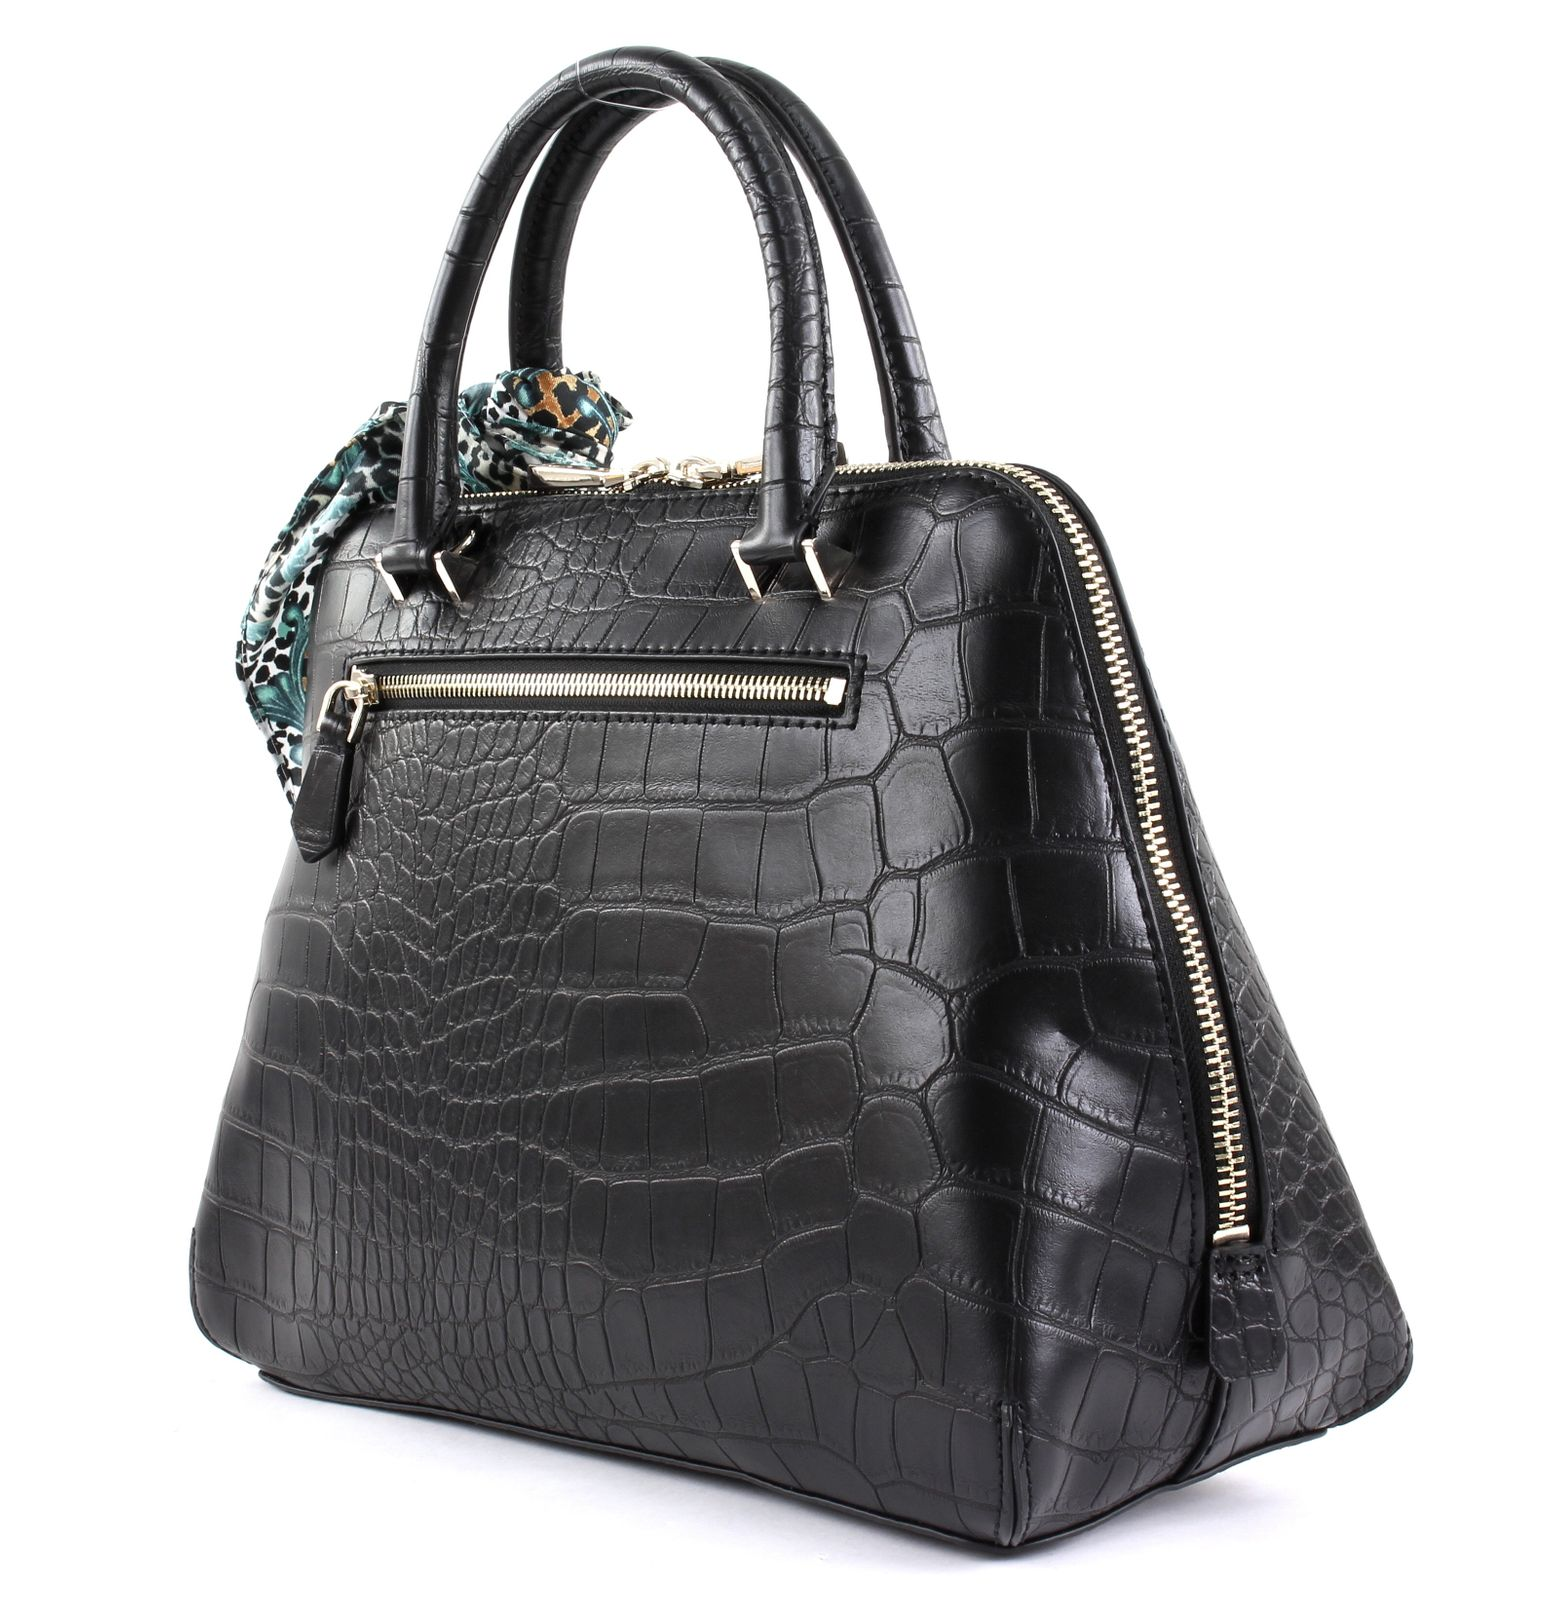 56130deae87 GUESS Anne Marie Dome Satchel Black. Schließen Weiter. Schließen Weiter  Zurück. Schließen Weiter Zurück. Schließen Weiter Zurück. Schließen Weiter  Zurück